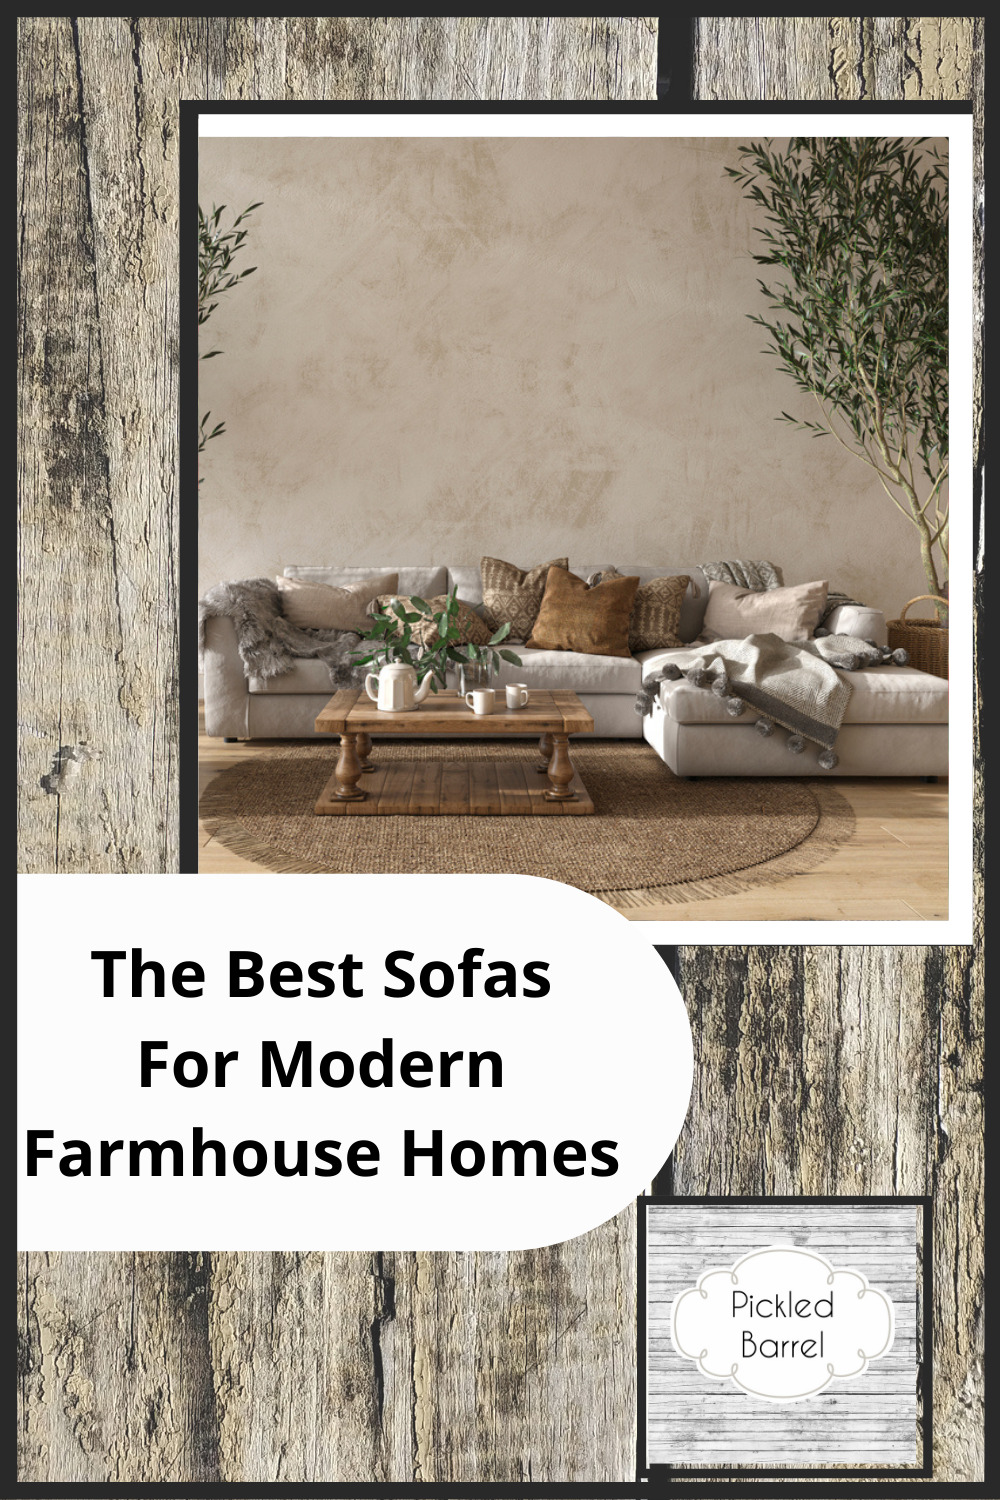 Pickledbarrel.com has perfectly quaint and rustic ideas for a farmhouse home. Find fresh, new decor ideas to spruce up your space. These ideas are absolutely perfect for a farmhouse style living room sofa!